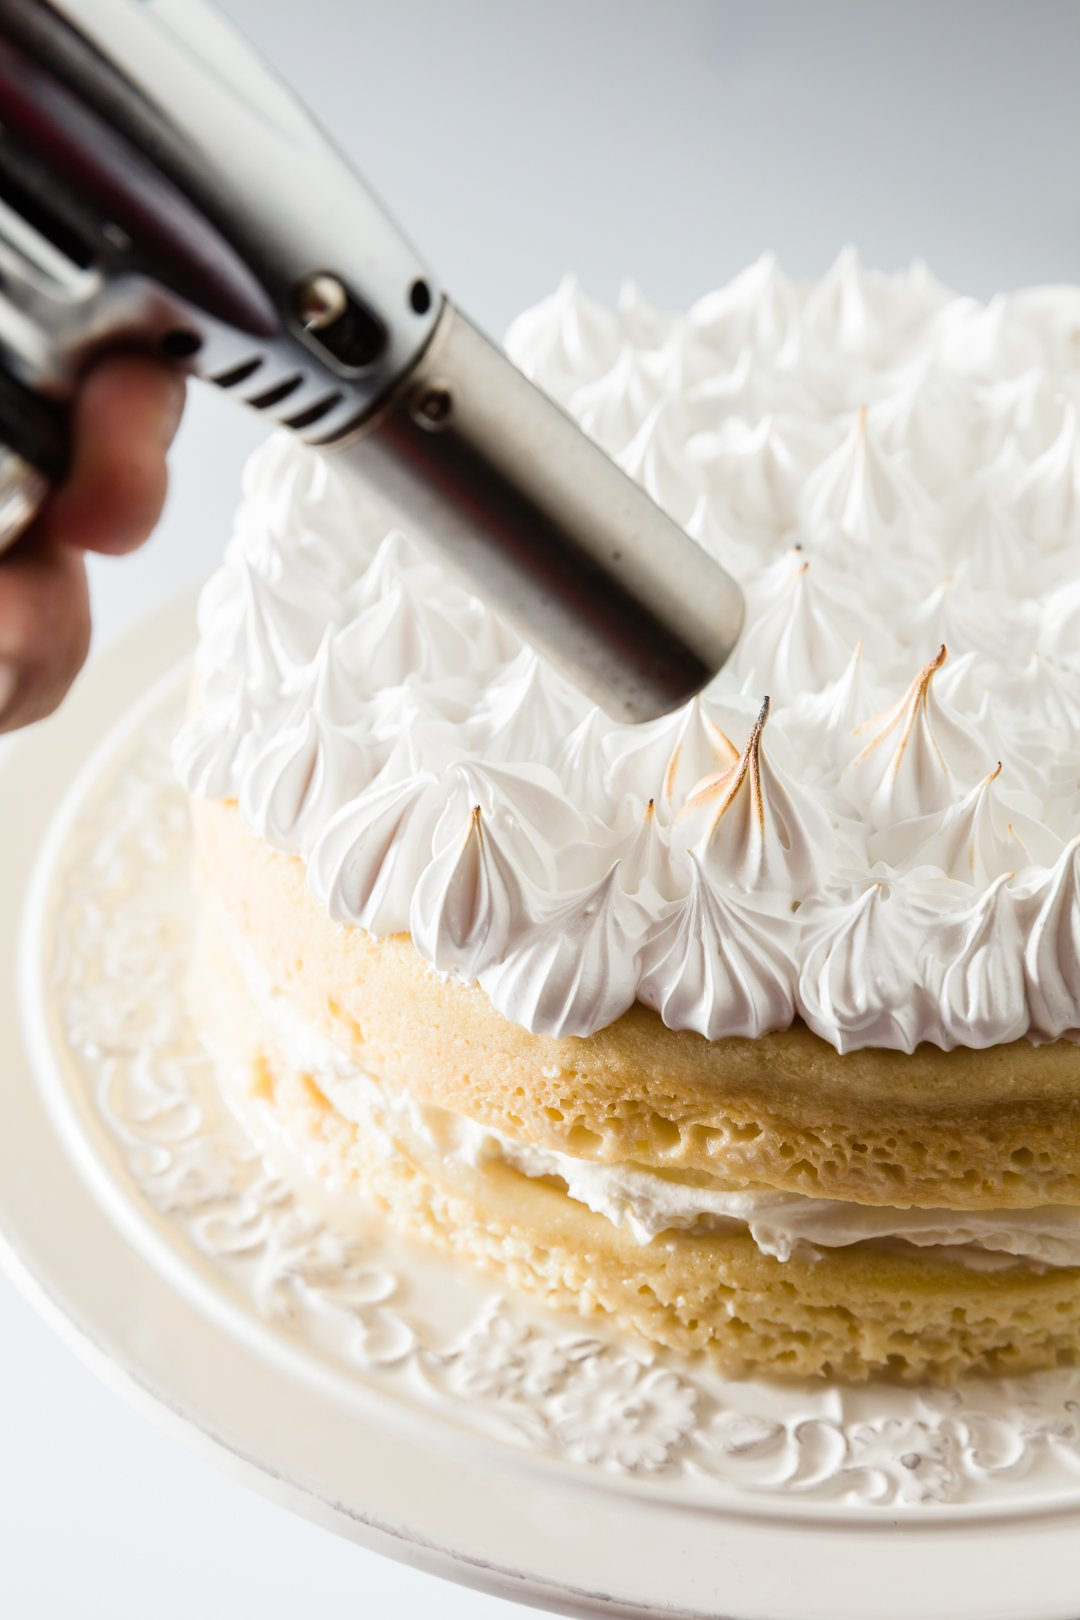 Using a culinary torch to toast meringue frosting